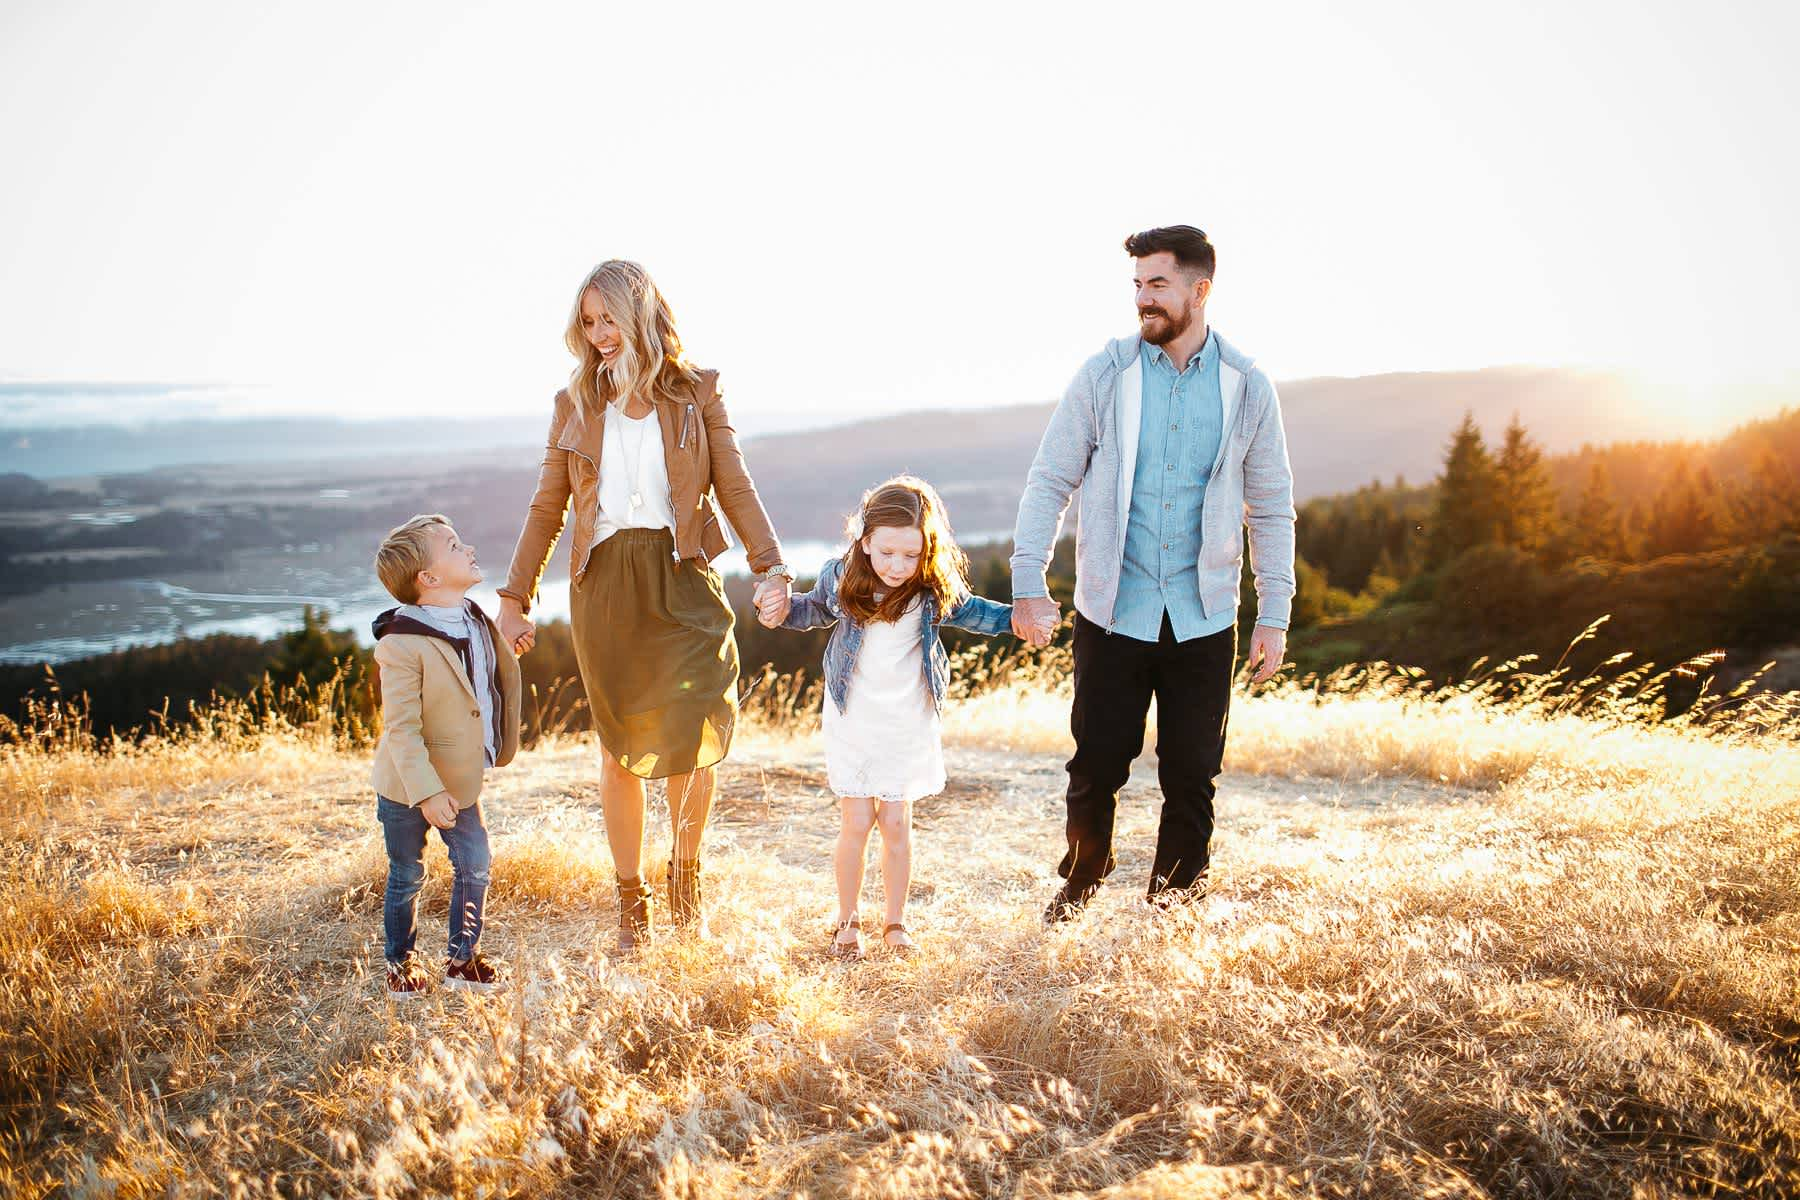 mt-tam-lifestyle-family-northern-california-photographer-52